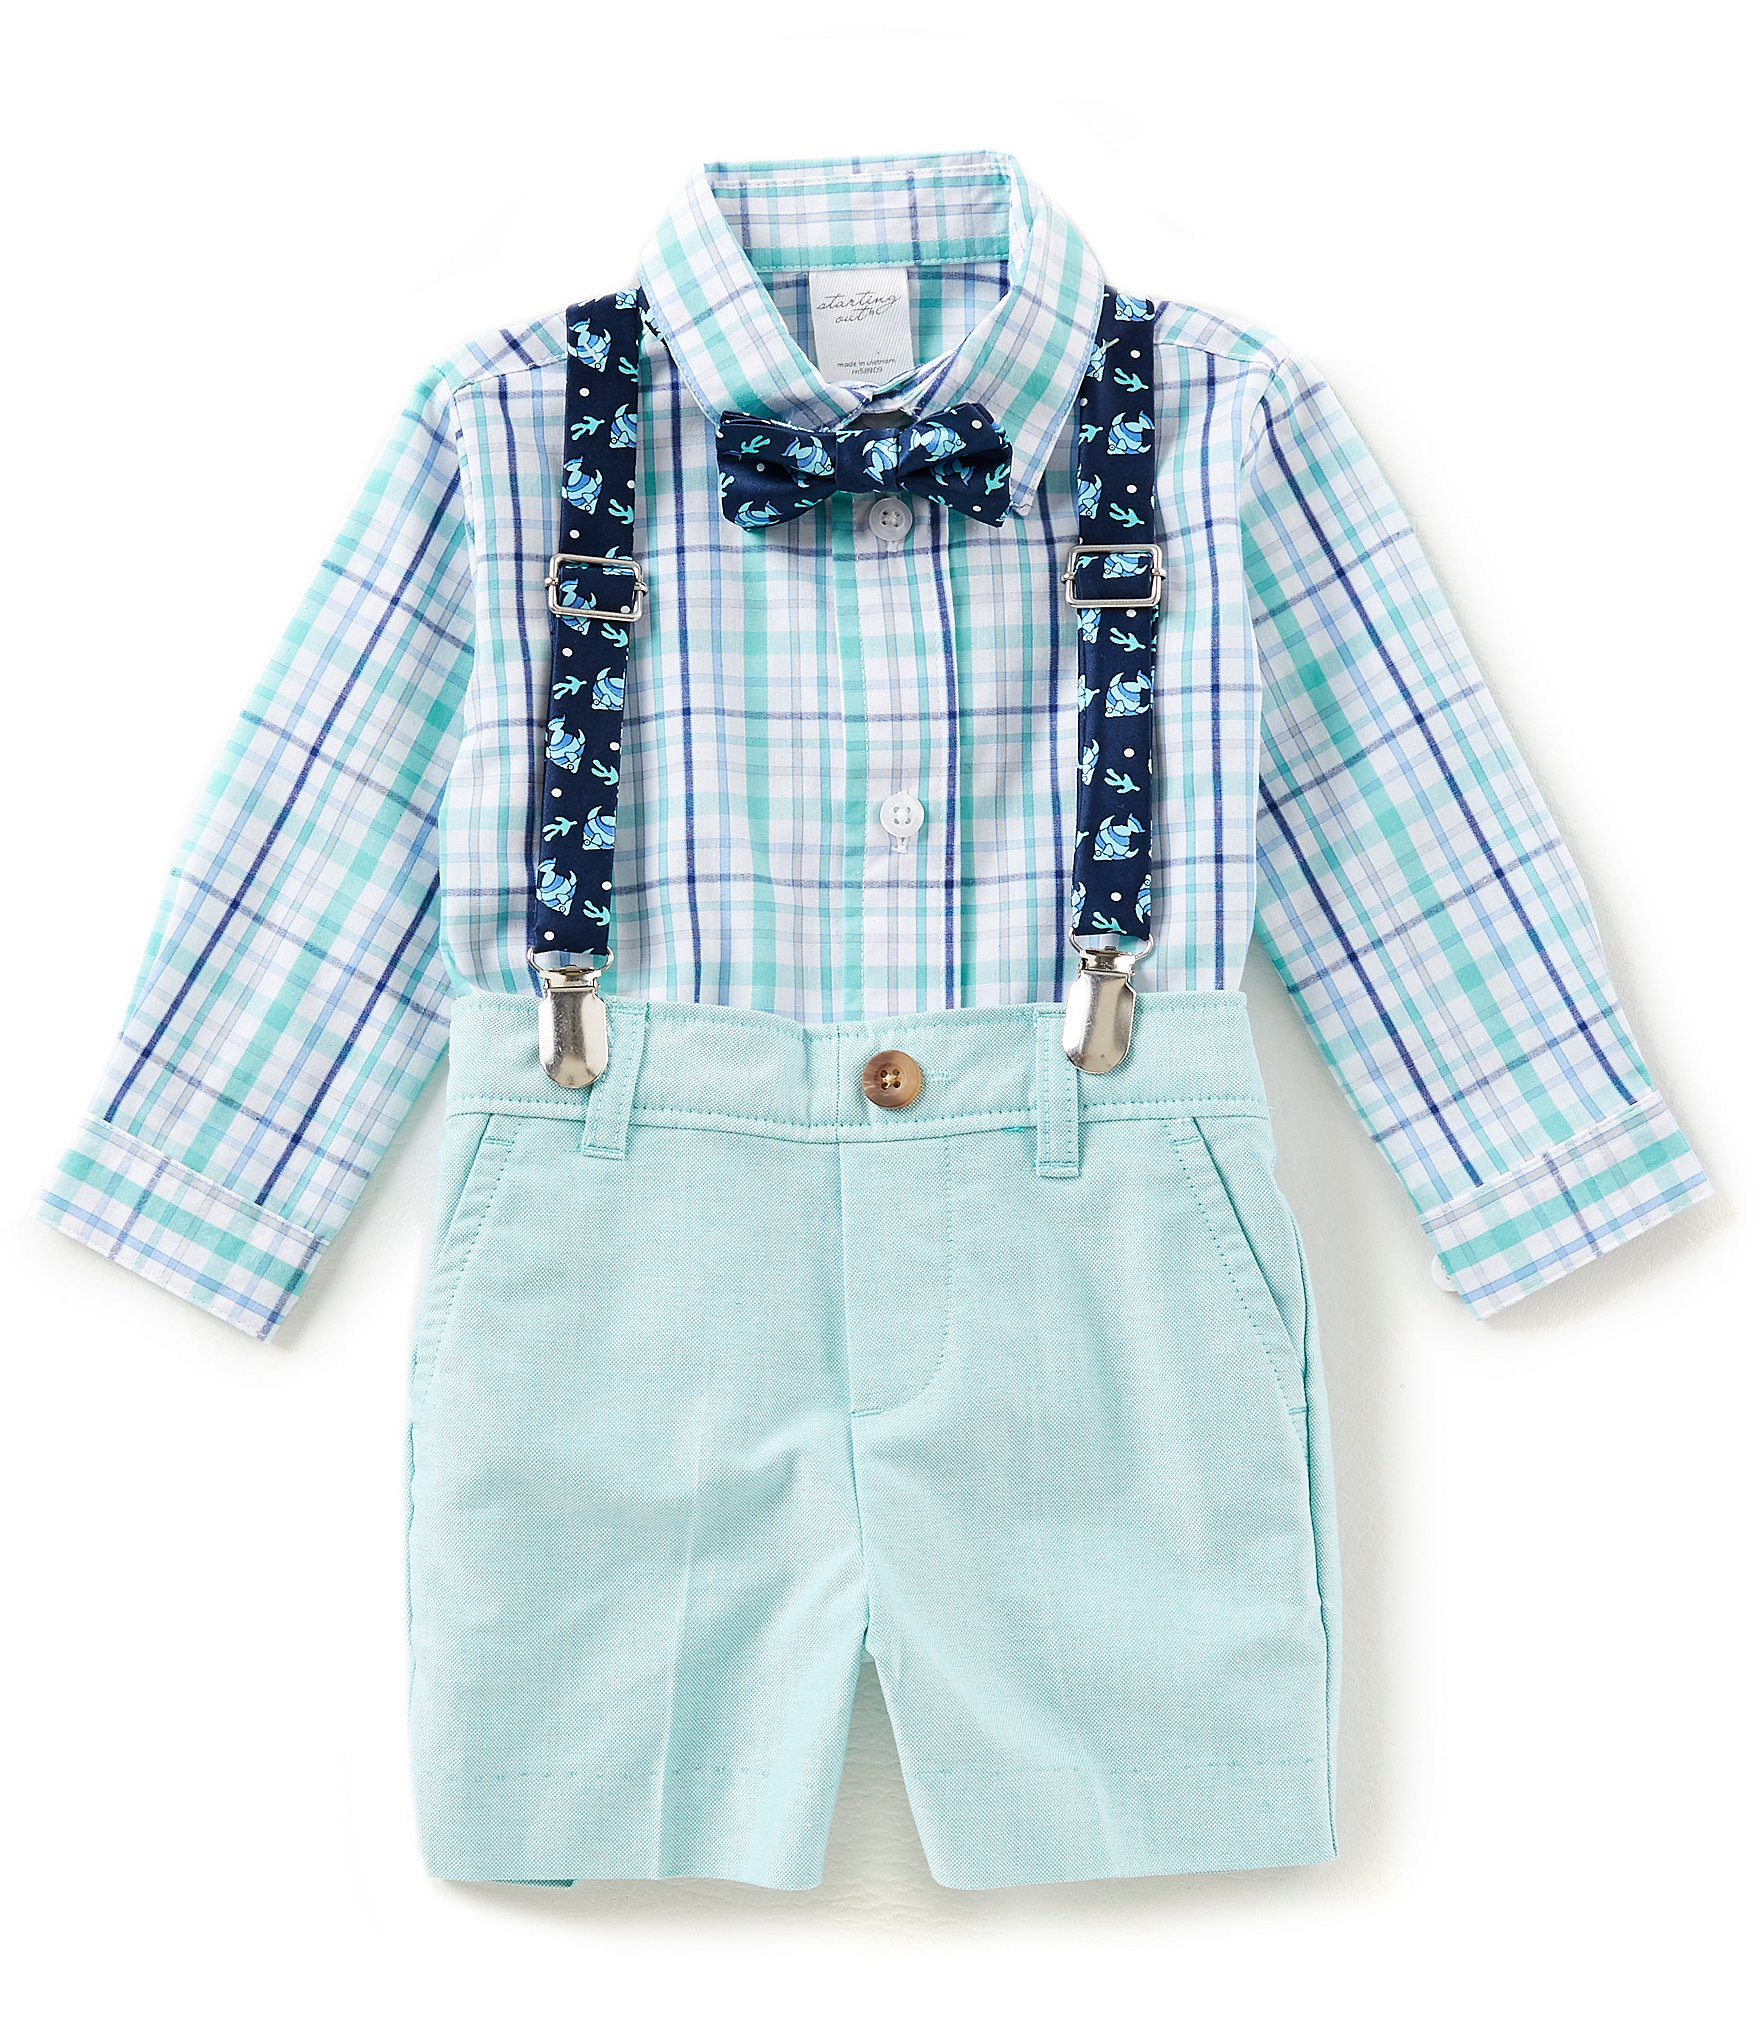 Starting out baby boys 3 24 months button down shirt for Baby shirt and bow tie